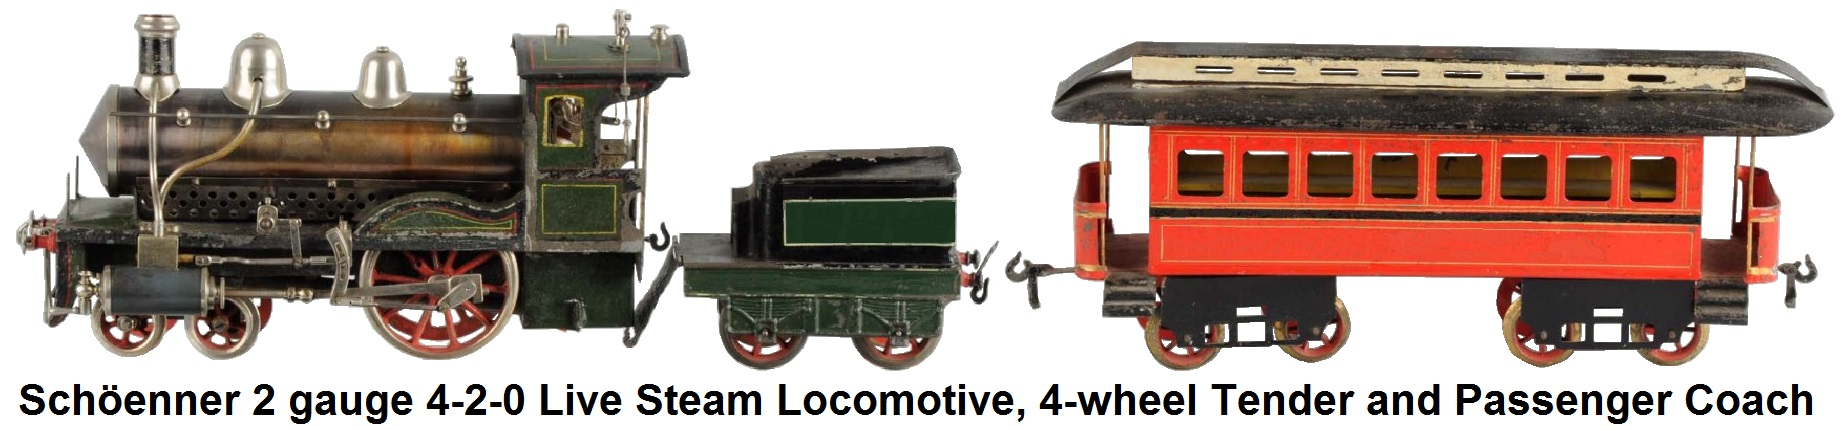 Schöenner #2 gauge 4-2-0 Live Steam Locomotive, 4-wheel Tender and Passenger coach